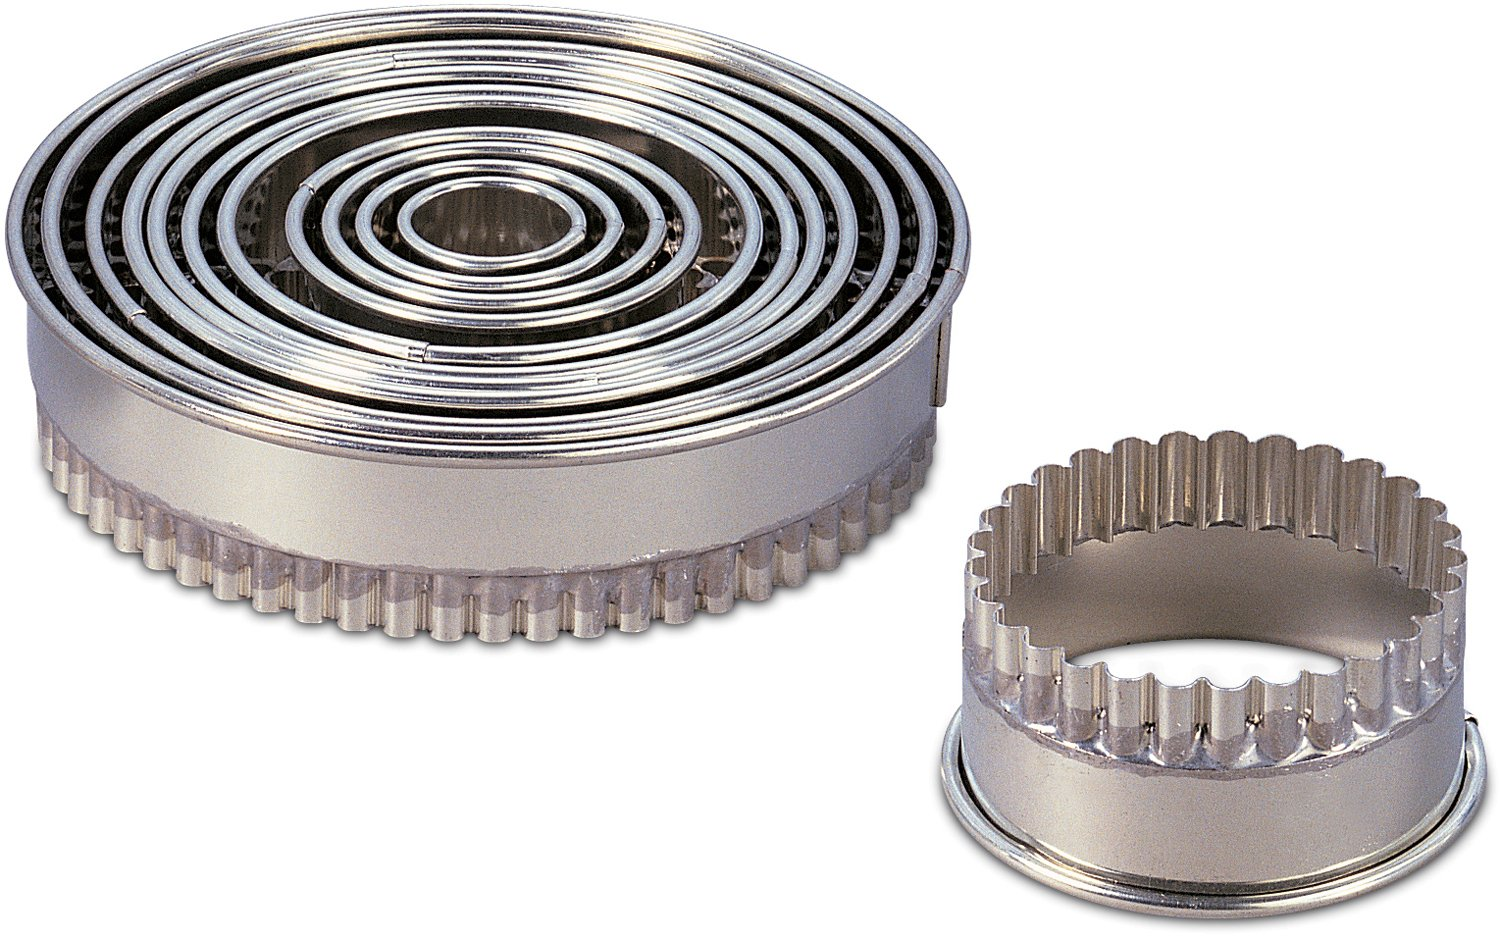 J.B. Prince T233 12 Tinned Steel 12-Piece Fluted Round Cutter Set